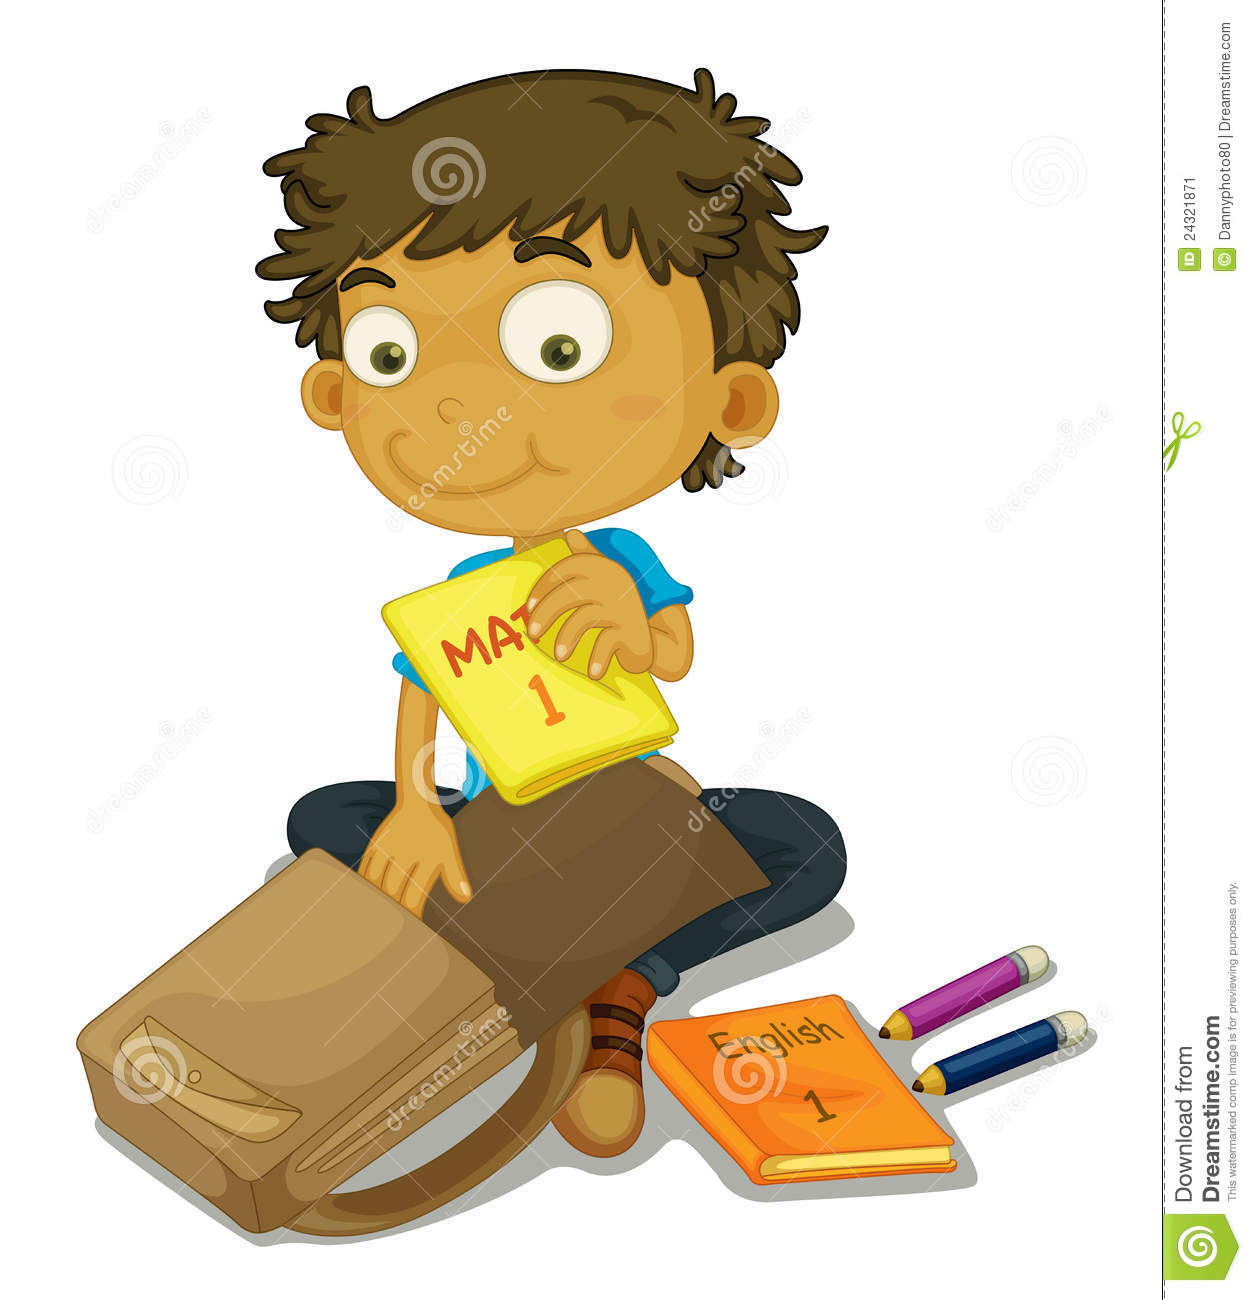 Pack school bag clipart 11 » Clipart Station.